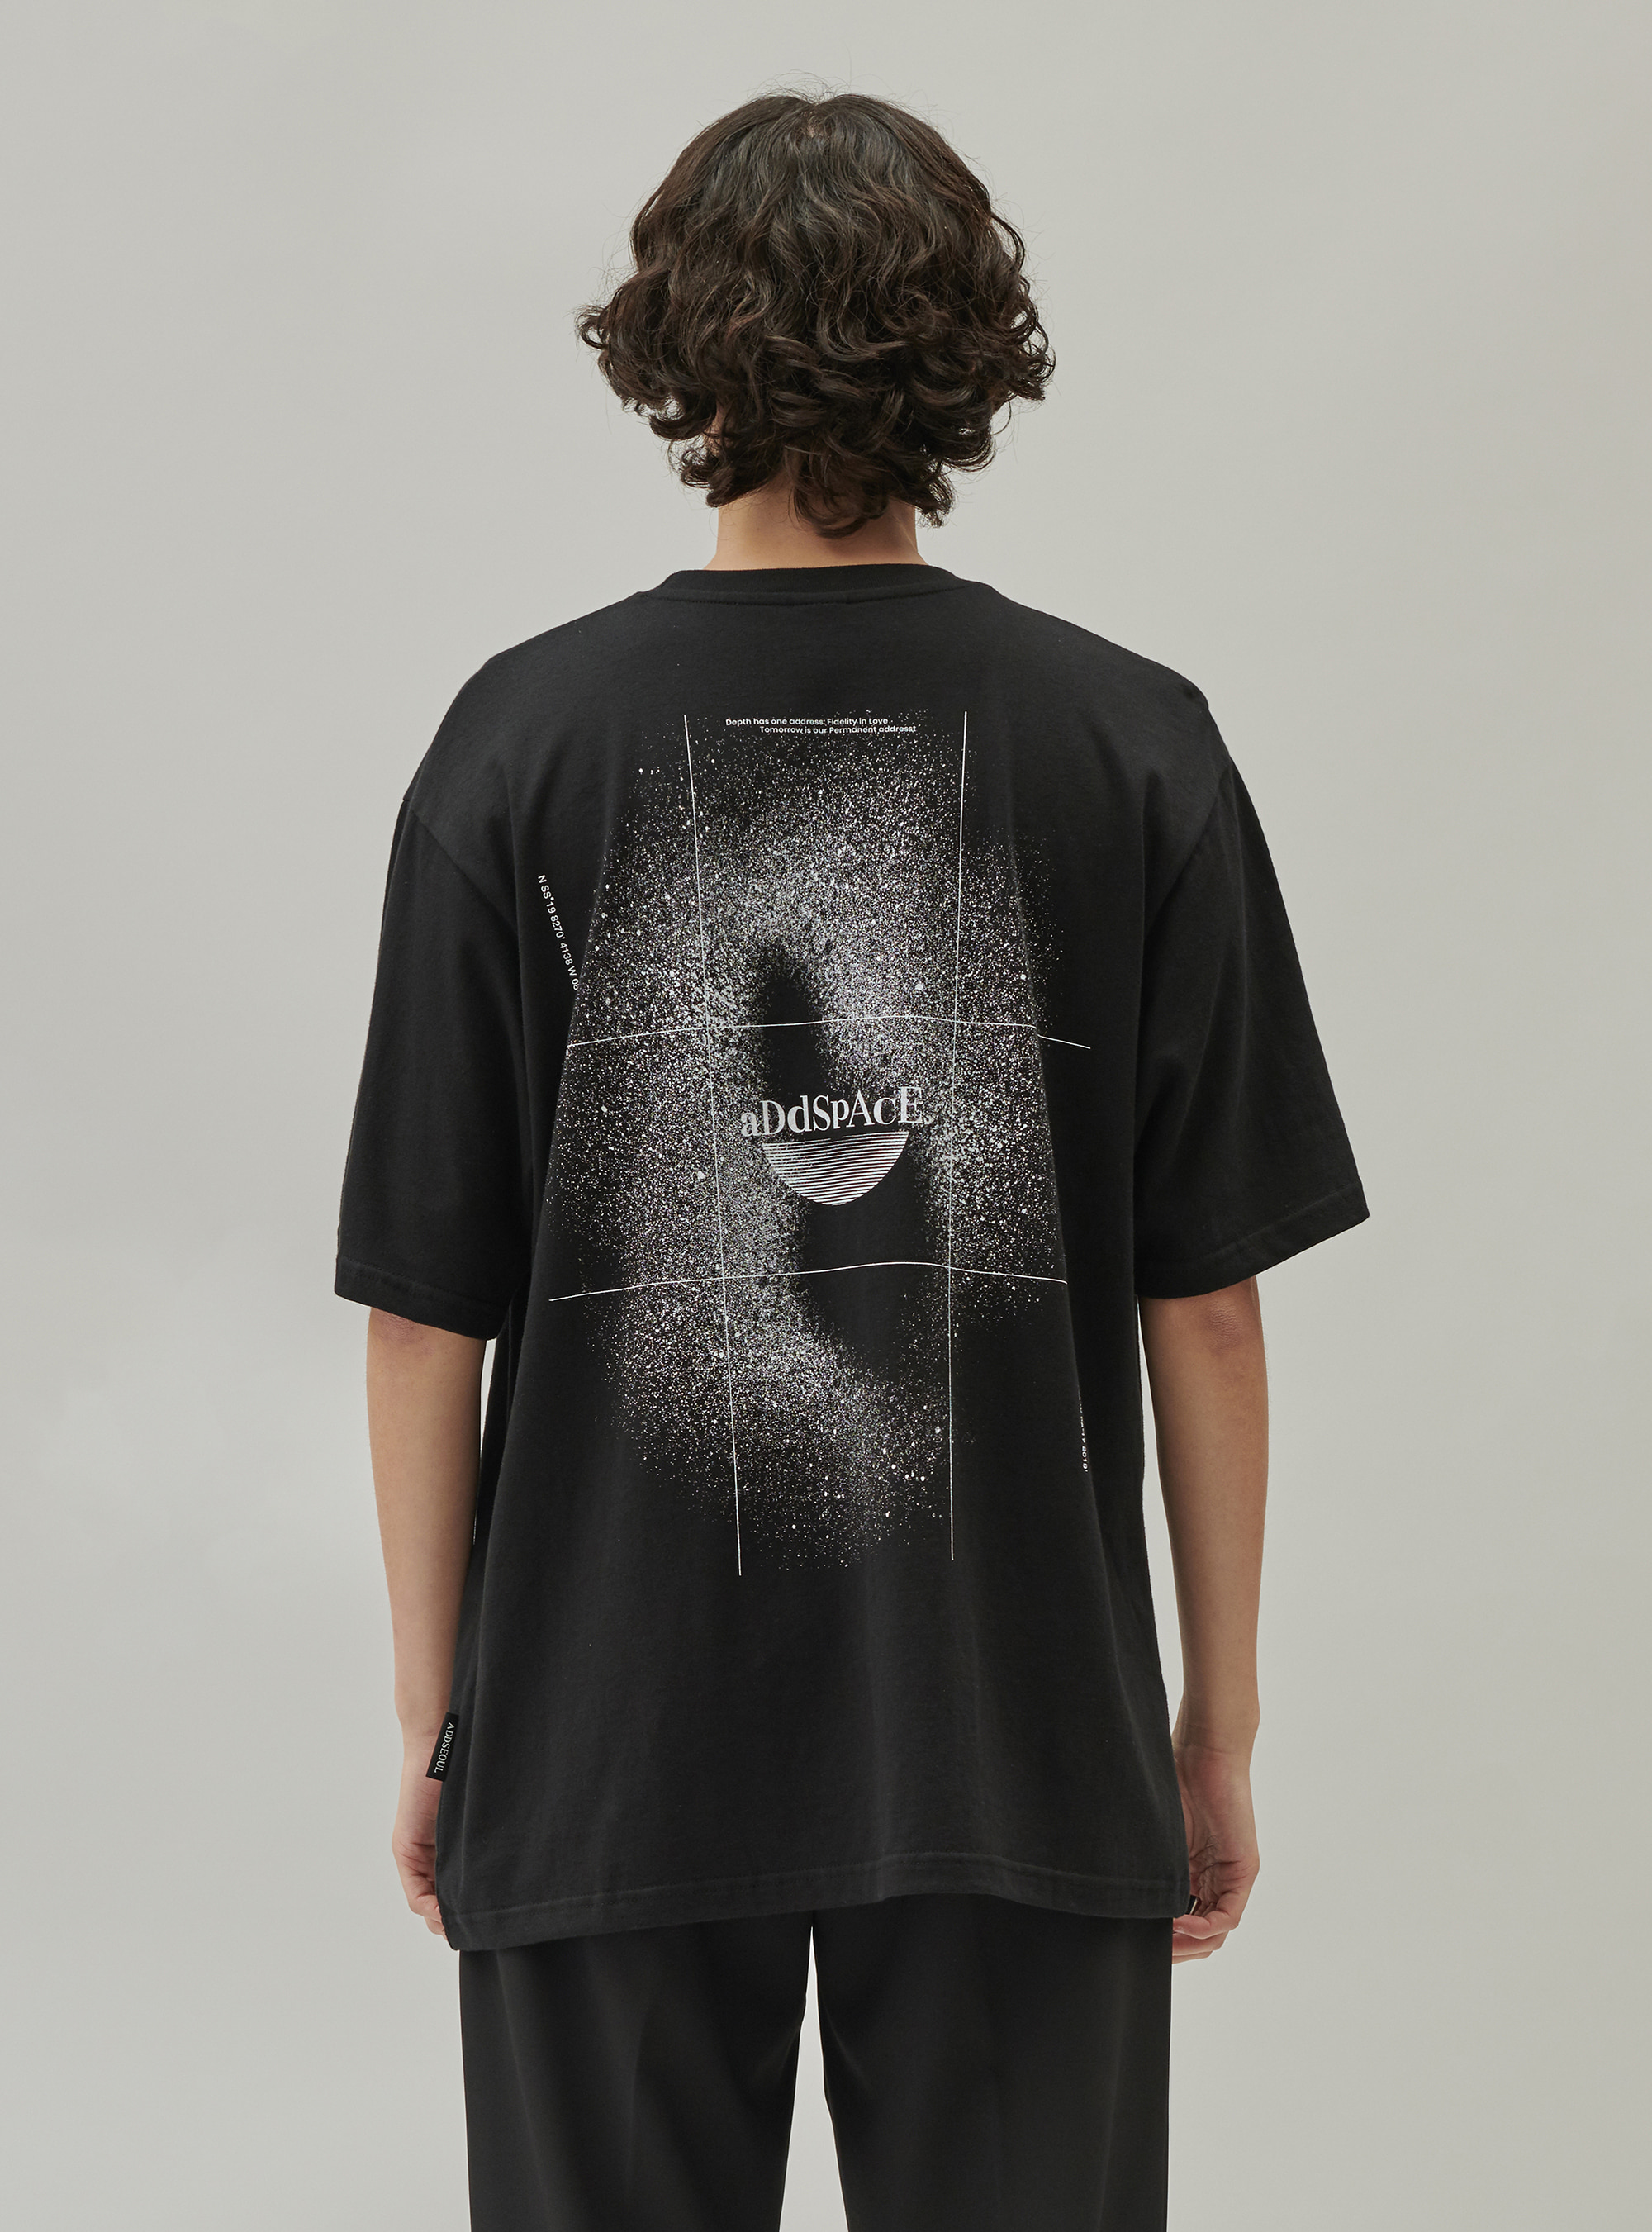 ADD SPACE C TEE BLACK